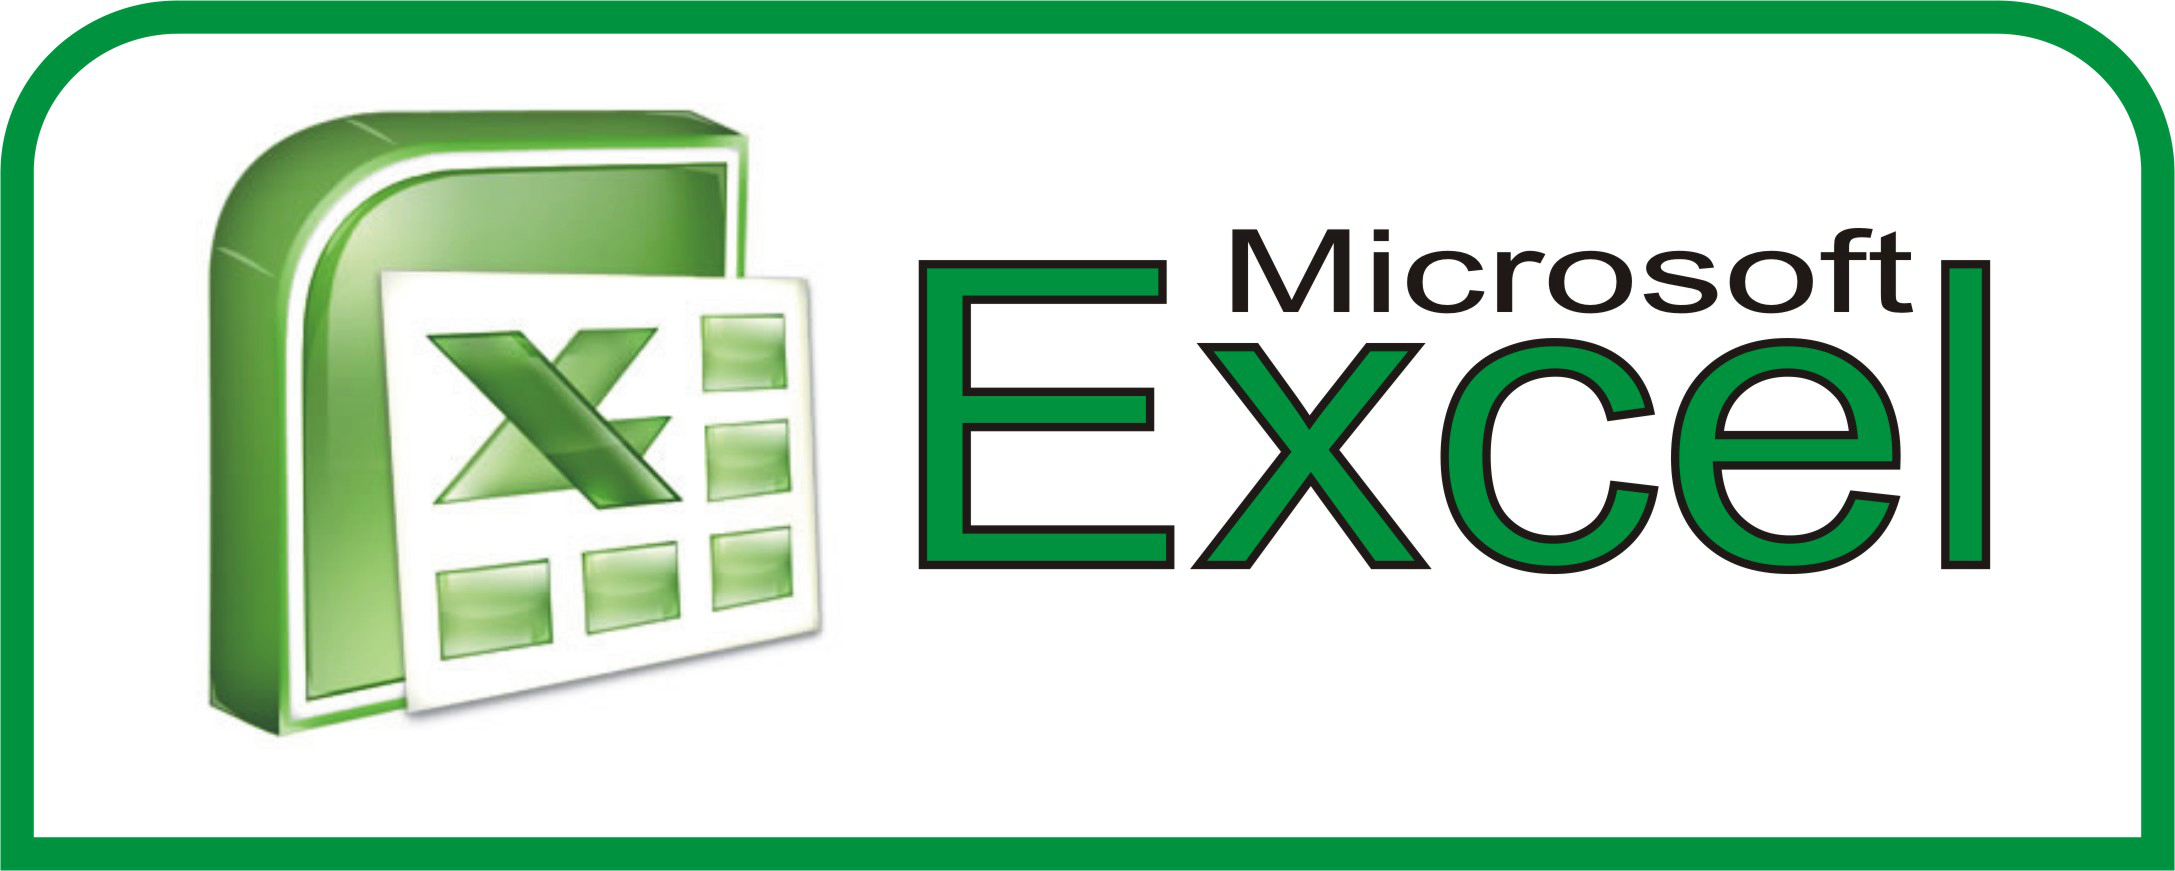 Ediblewildsus  Unique  Excel Shortcuts You Probably Didnt Know About  Techdissected With Exciting Excel Association Management Besides Excel Cell Formula Furthermore Excel Count Rows With Data With Cool Weekly Planner Template Excel Also Excel Variable In Addition Excel Subtotal If And How To Use Offset In Excel As Well As Concatenation Excel Additionally Compare Two Excel Sheets For Differences From Techdissectedcom With Ediblewildsus  Exciting  Excel Shortcuts You Probably Didnt Know About  Techdissected With Cool Excel Association Management Besides Excel Cell Formula Furthermore Excel Count Rows With Data And Unique Weekly Planner Template Excel Also Excel Variable In Addition Excel Subtotal If From Techdissectedcom